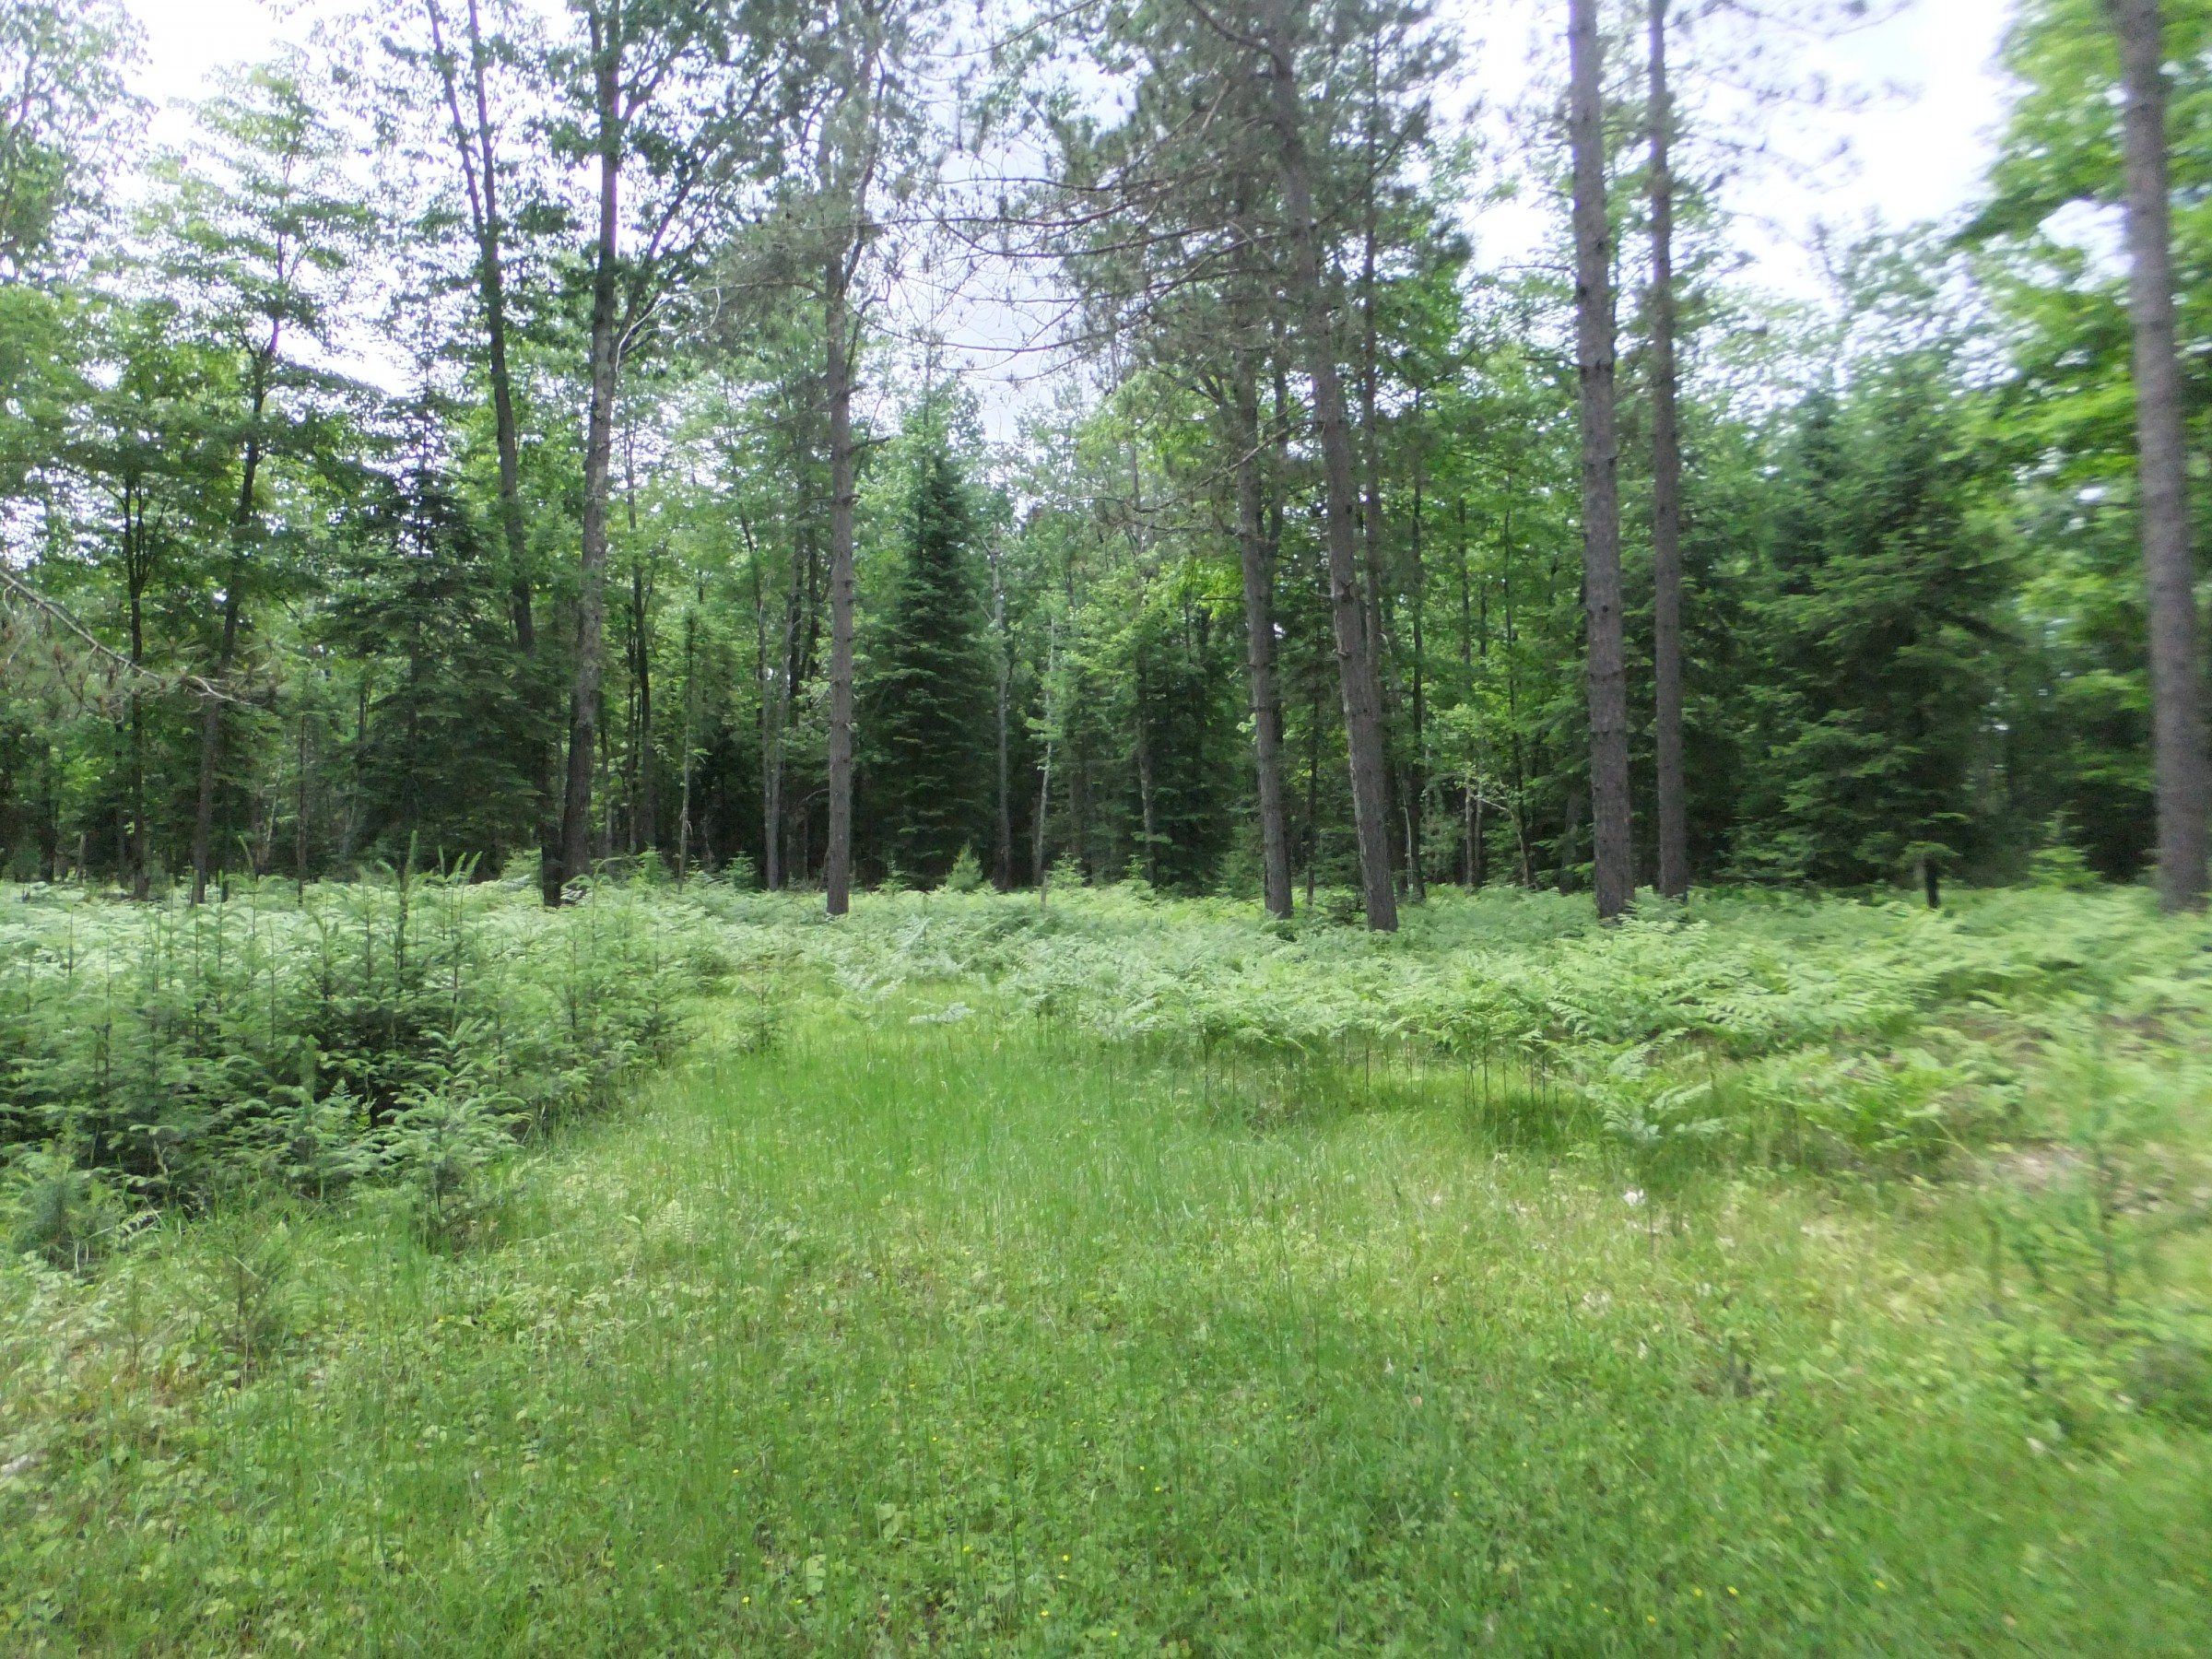 Earthworms and other species can have large effects on Wisconsin forests.